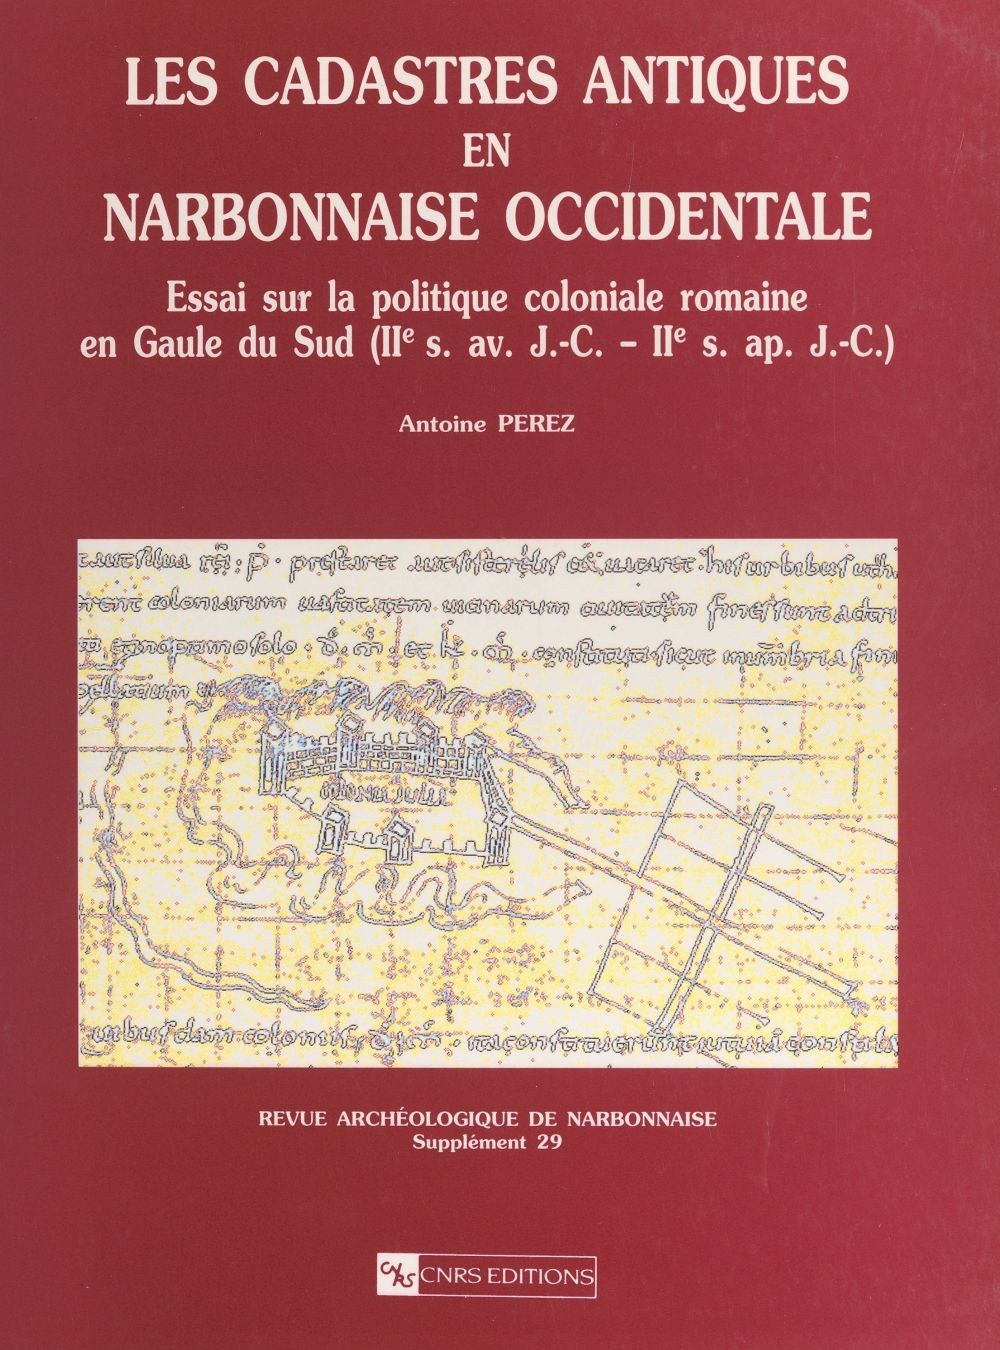 Les cadastres antiques en Narbonnaise occidentale